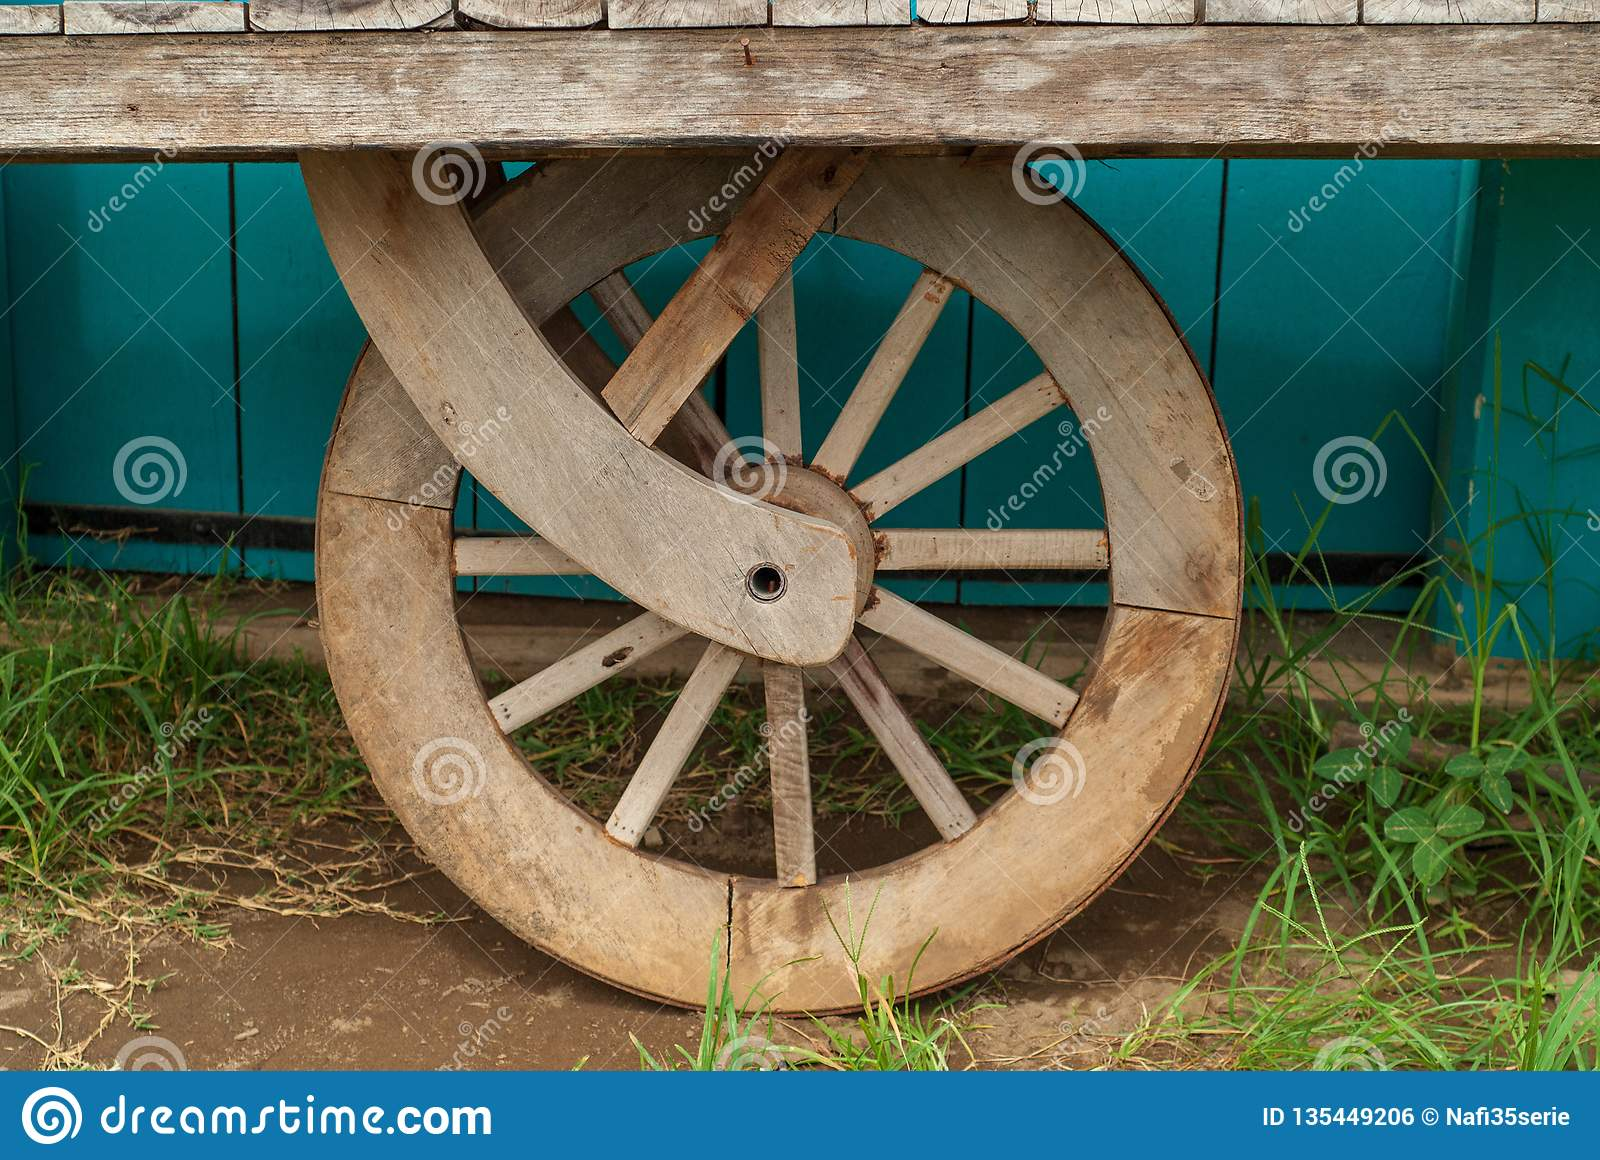 The shape of a wooden wheel on an ancient cart